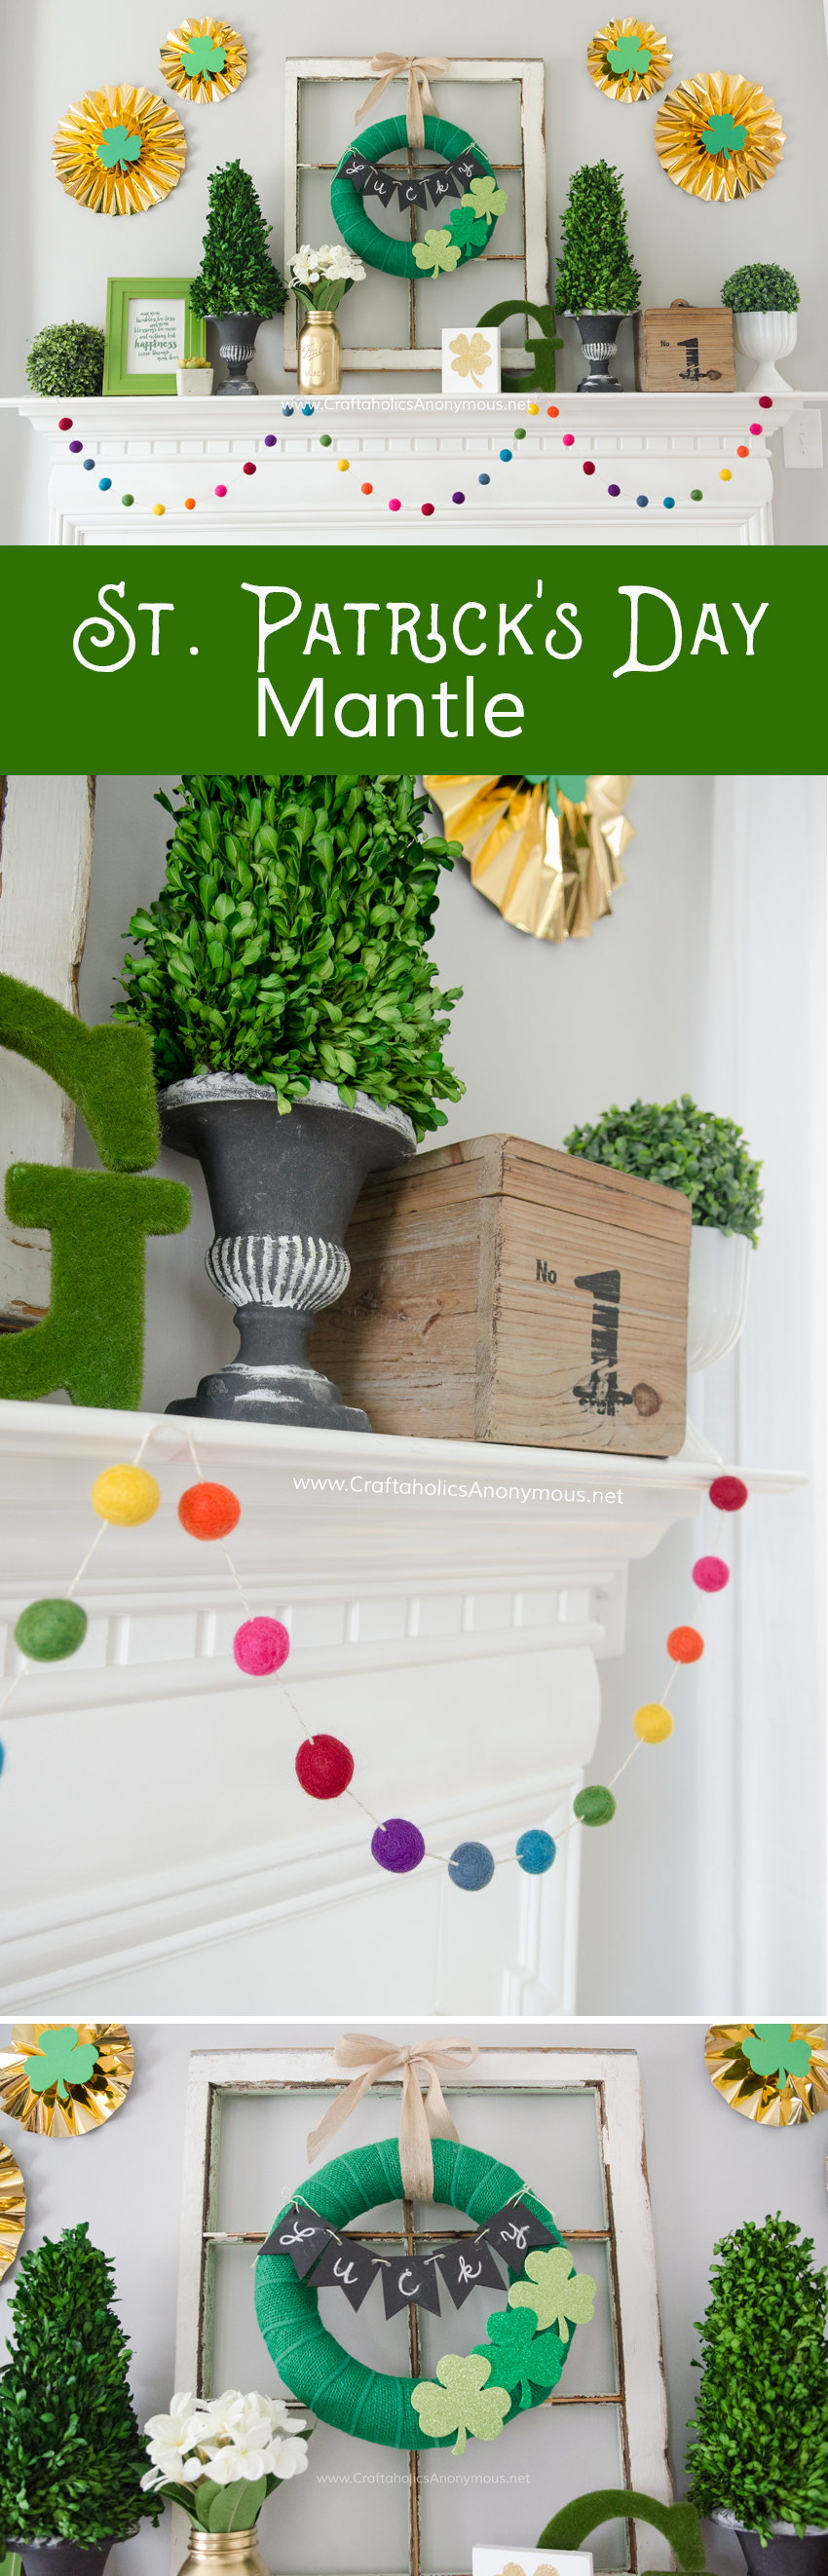 DIY St. Patrick's Day Mantle. That rainbow felt ball garland is to die for!